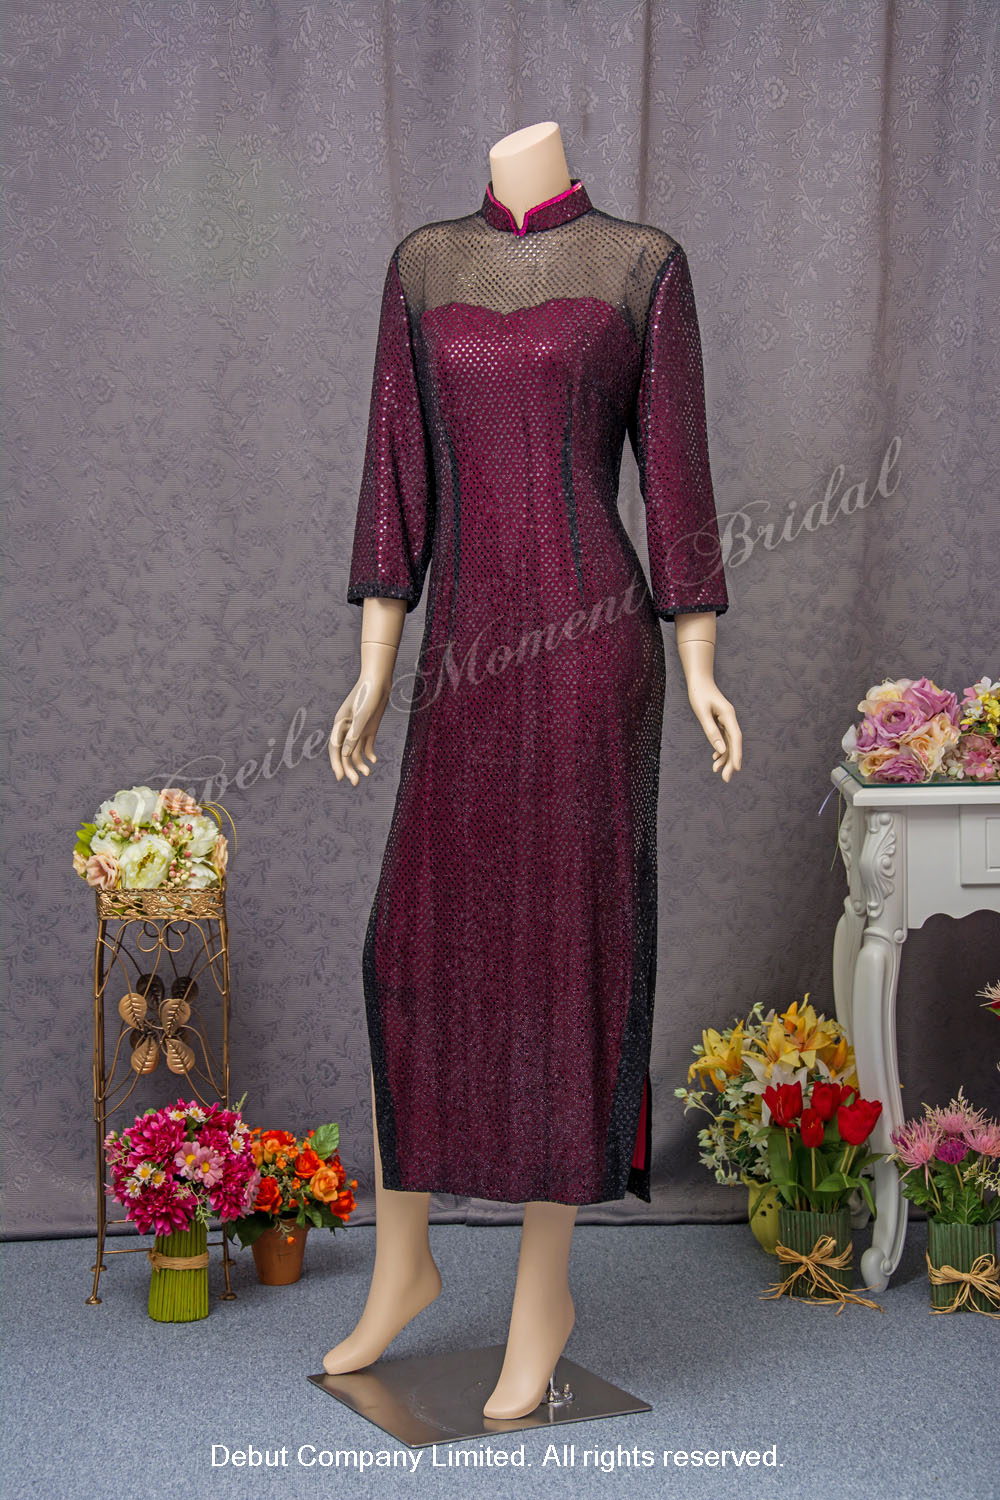 Long Sleeves, High Collar, Red Wine Mother-of-the-bride Dress. 長袖, 企領, 酒紅色媽咪奶奶晩裝